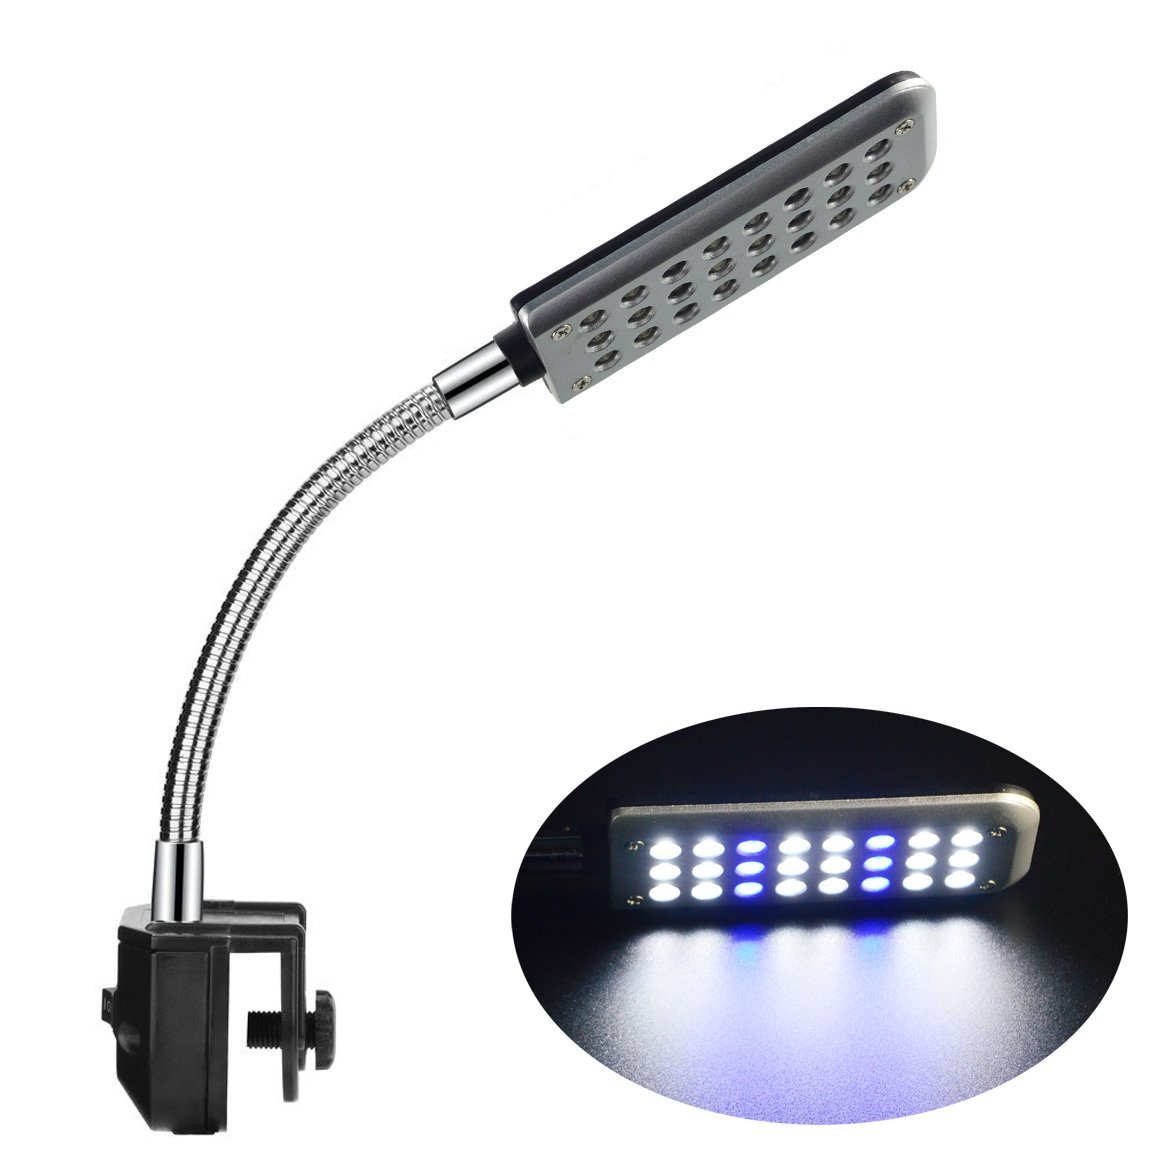 ECTENX LED Aquarium Light, Fish Tank Light, 24 LEDs, Clip on Fish Tank Lighting Color with White&Blue